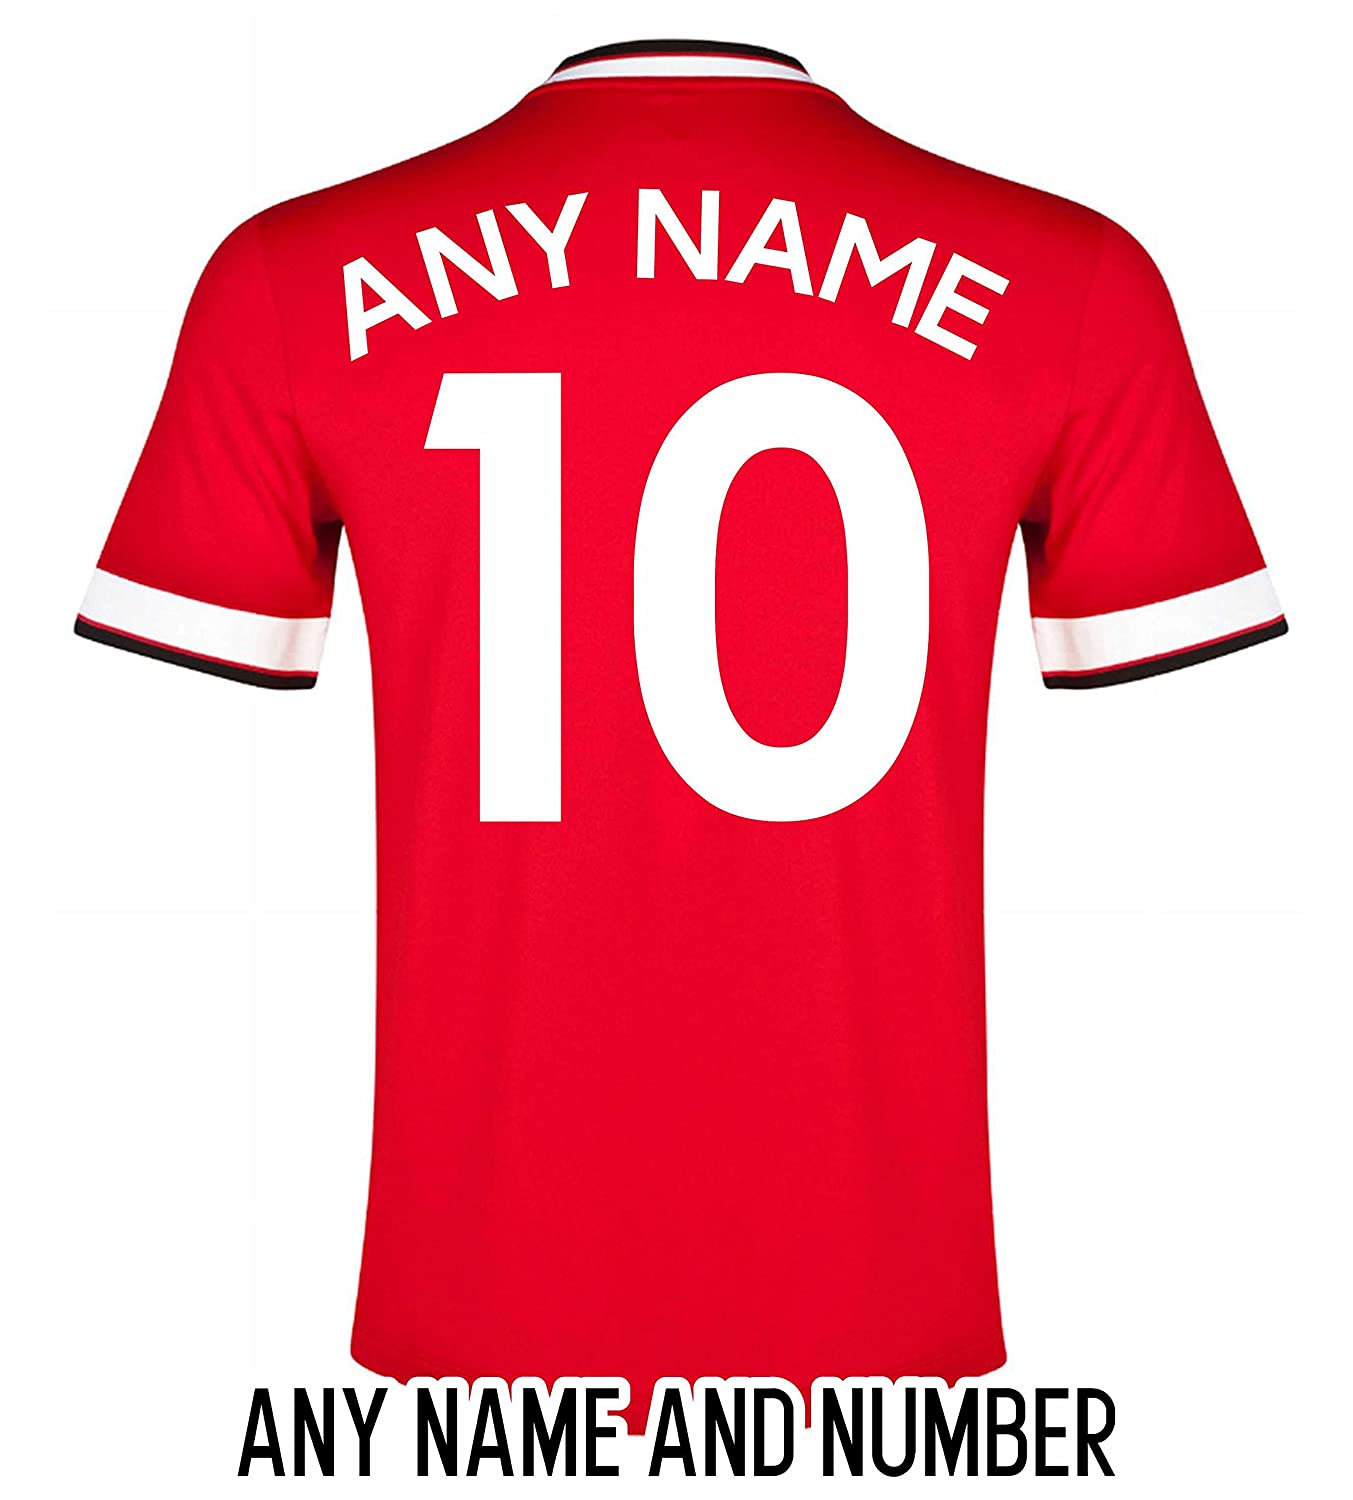 Football Shirt Name And Number Amazon Clothing